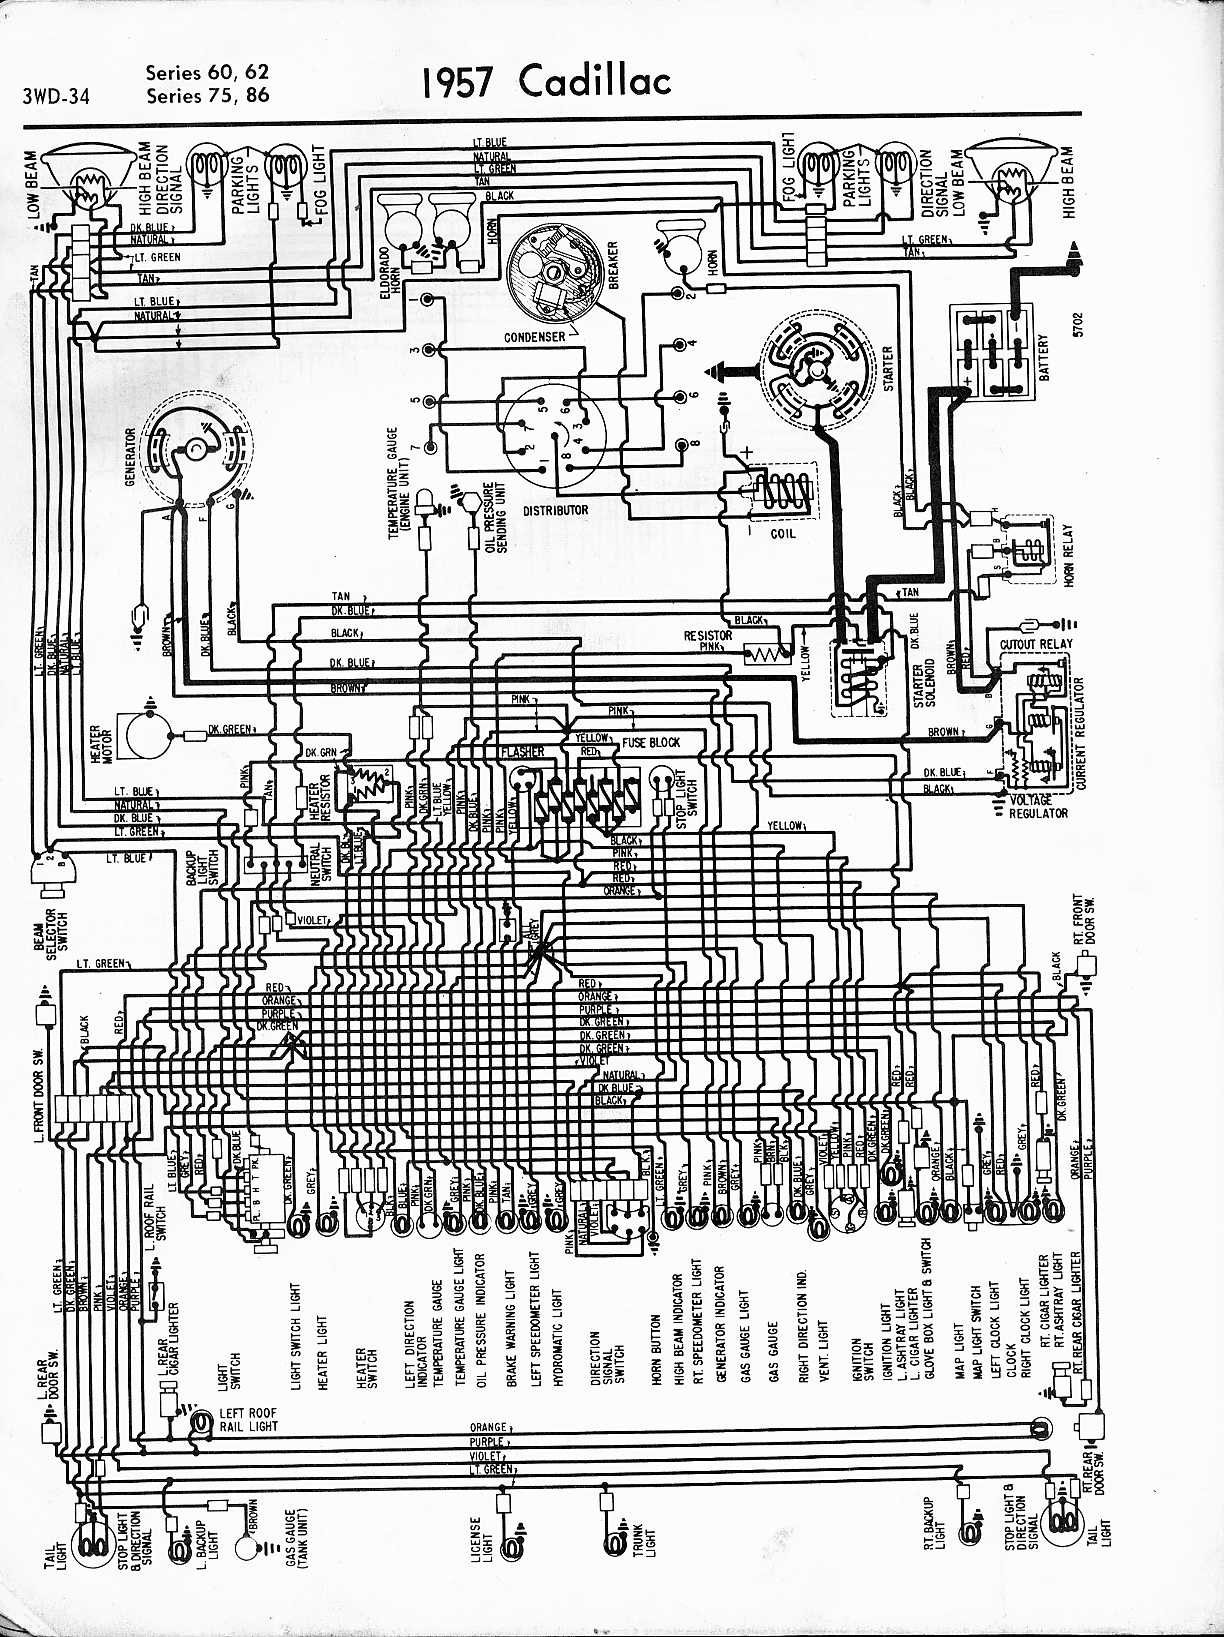 MWireCadi65_3WD 034?resize=665%2C889 surprising gmos 06 wiring diagram manual images wiring schematic gmos 06 wiring harness at n-0.co